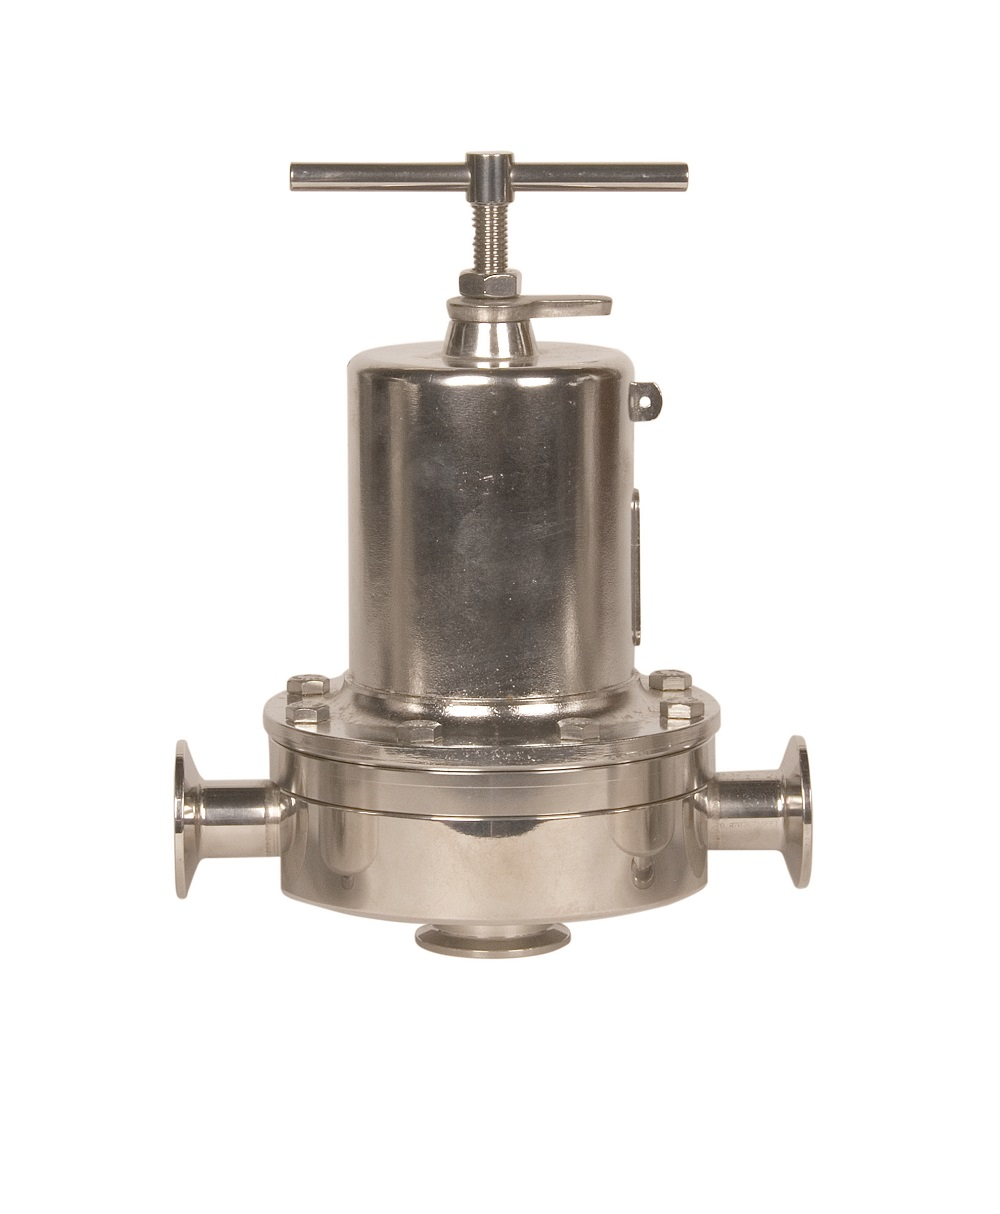 Hygienic Pressure Reducing Regulators